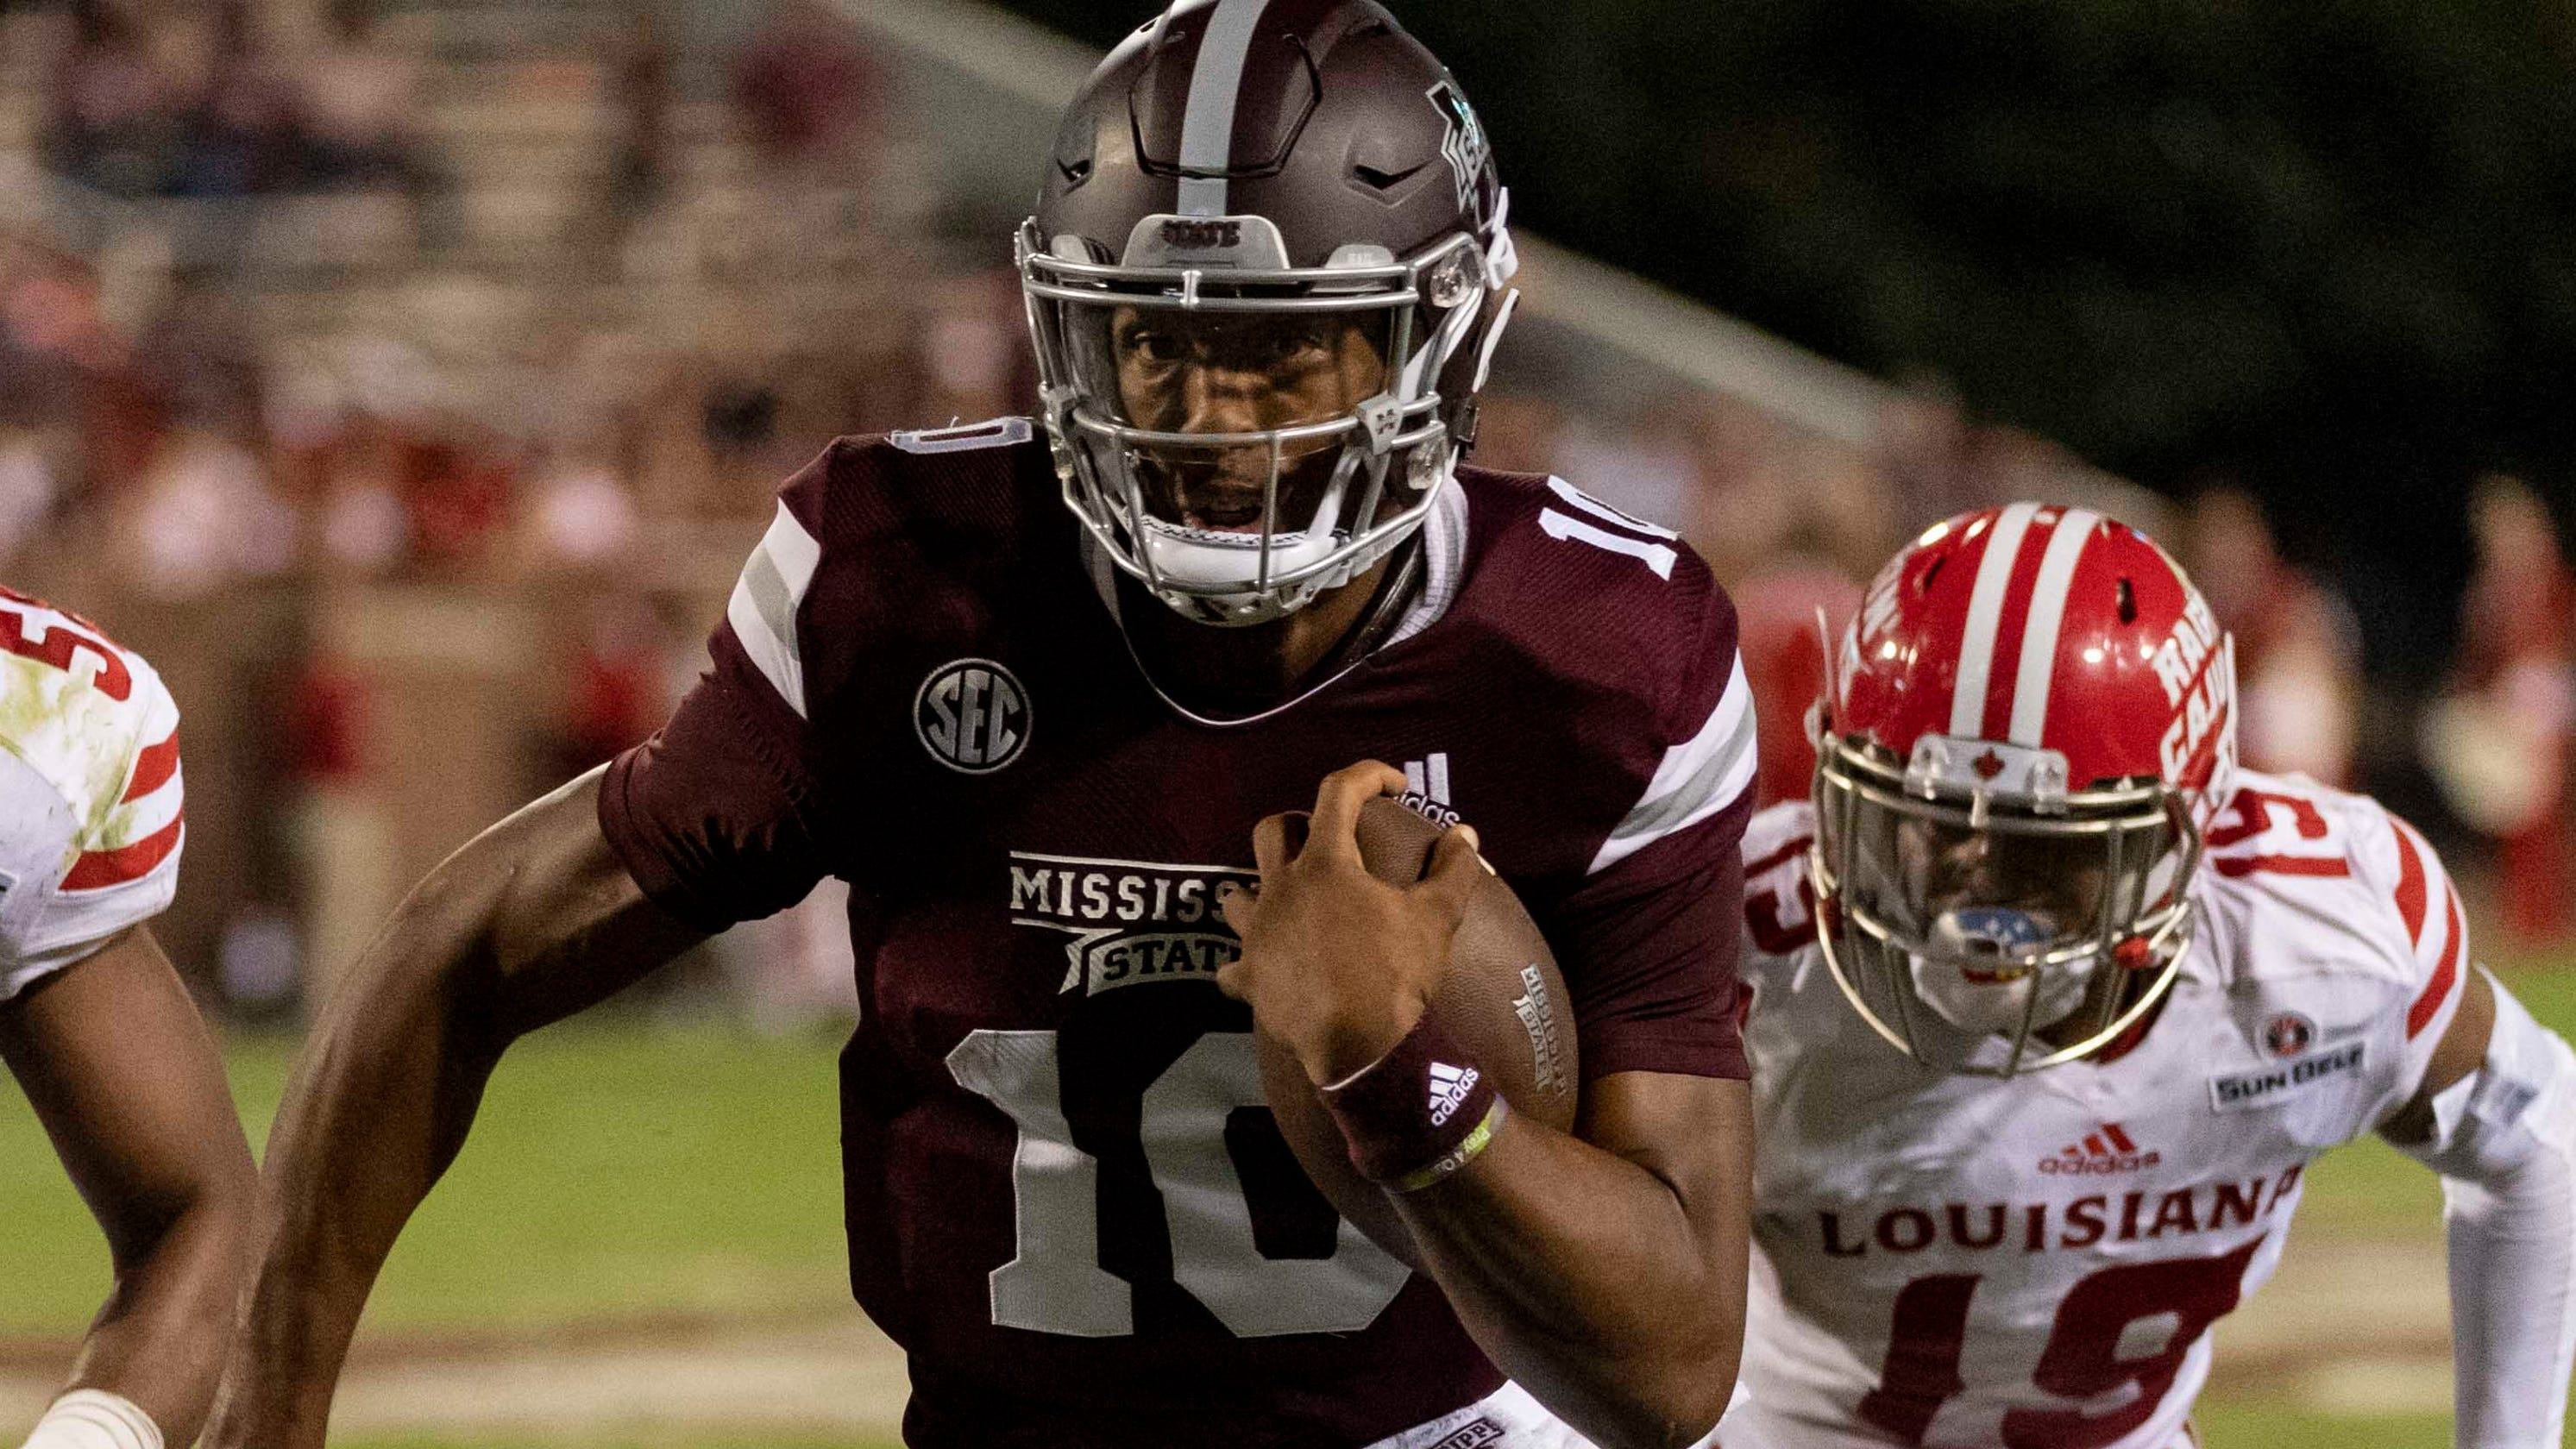 Mississippi State QB Keytaon Thompson enters NCAA transfer portal after starting snub